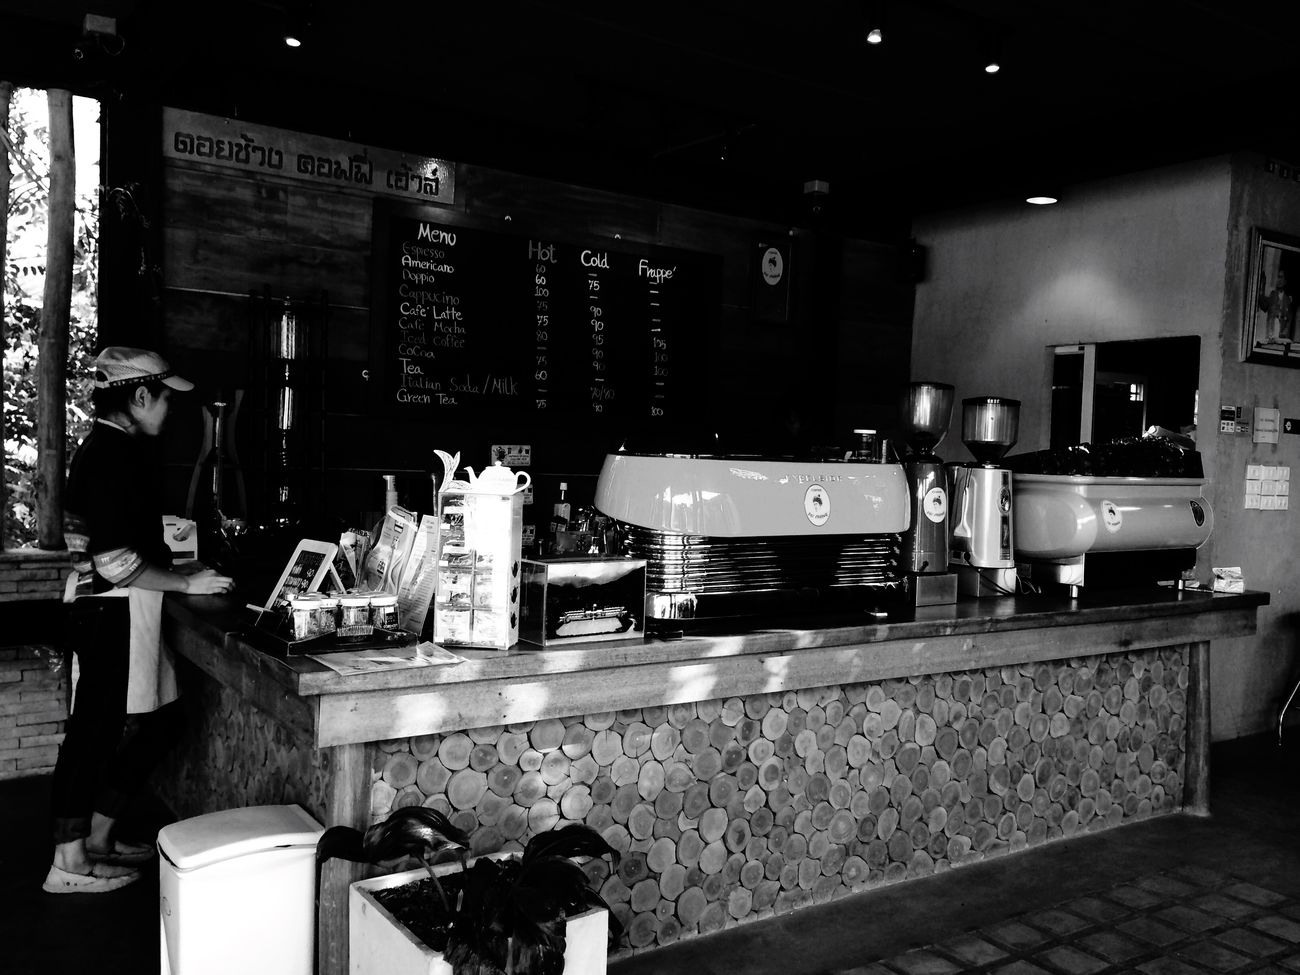 Best tasting coffee at Doi Chaang Coffee.(Pride of Thailand World Class Specialty Coffee) IPhoneography IPhoneArtism Thailand_allshots Hello World Travel Photography Blackandwhite Photography Blackandwhite Coffee Chiang Rai Iphonephotography